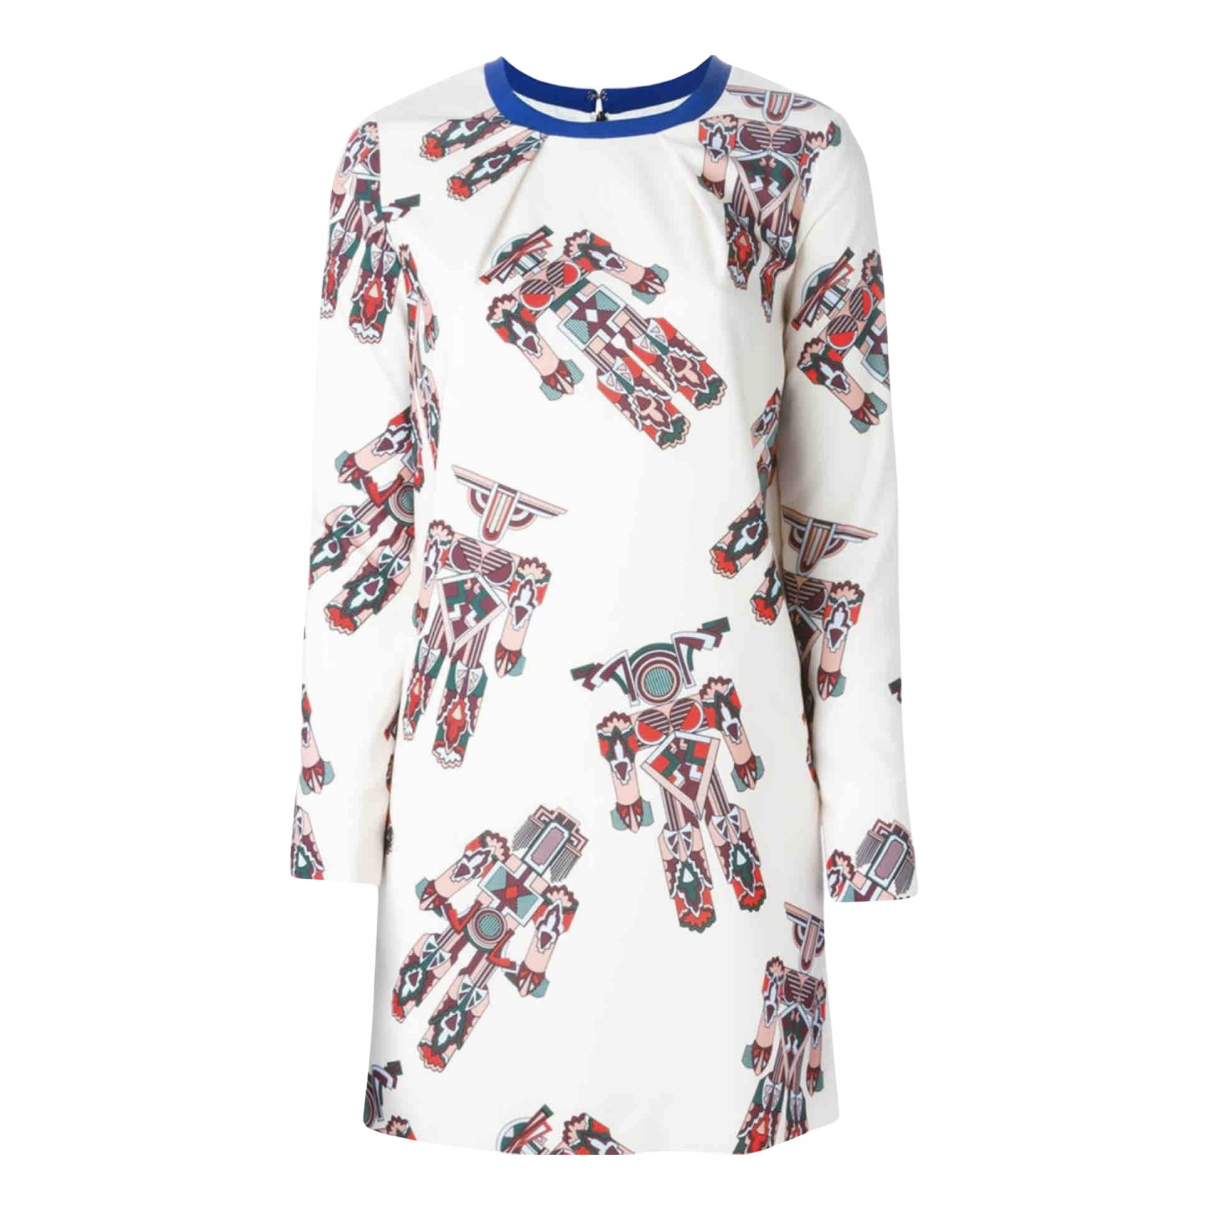 Msgm \N Kleid in  Weiss Polyester